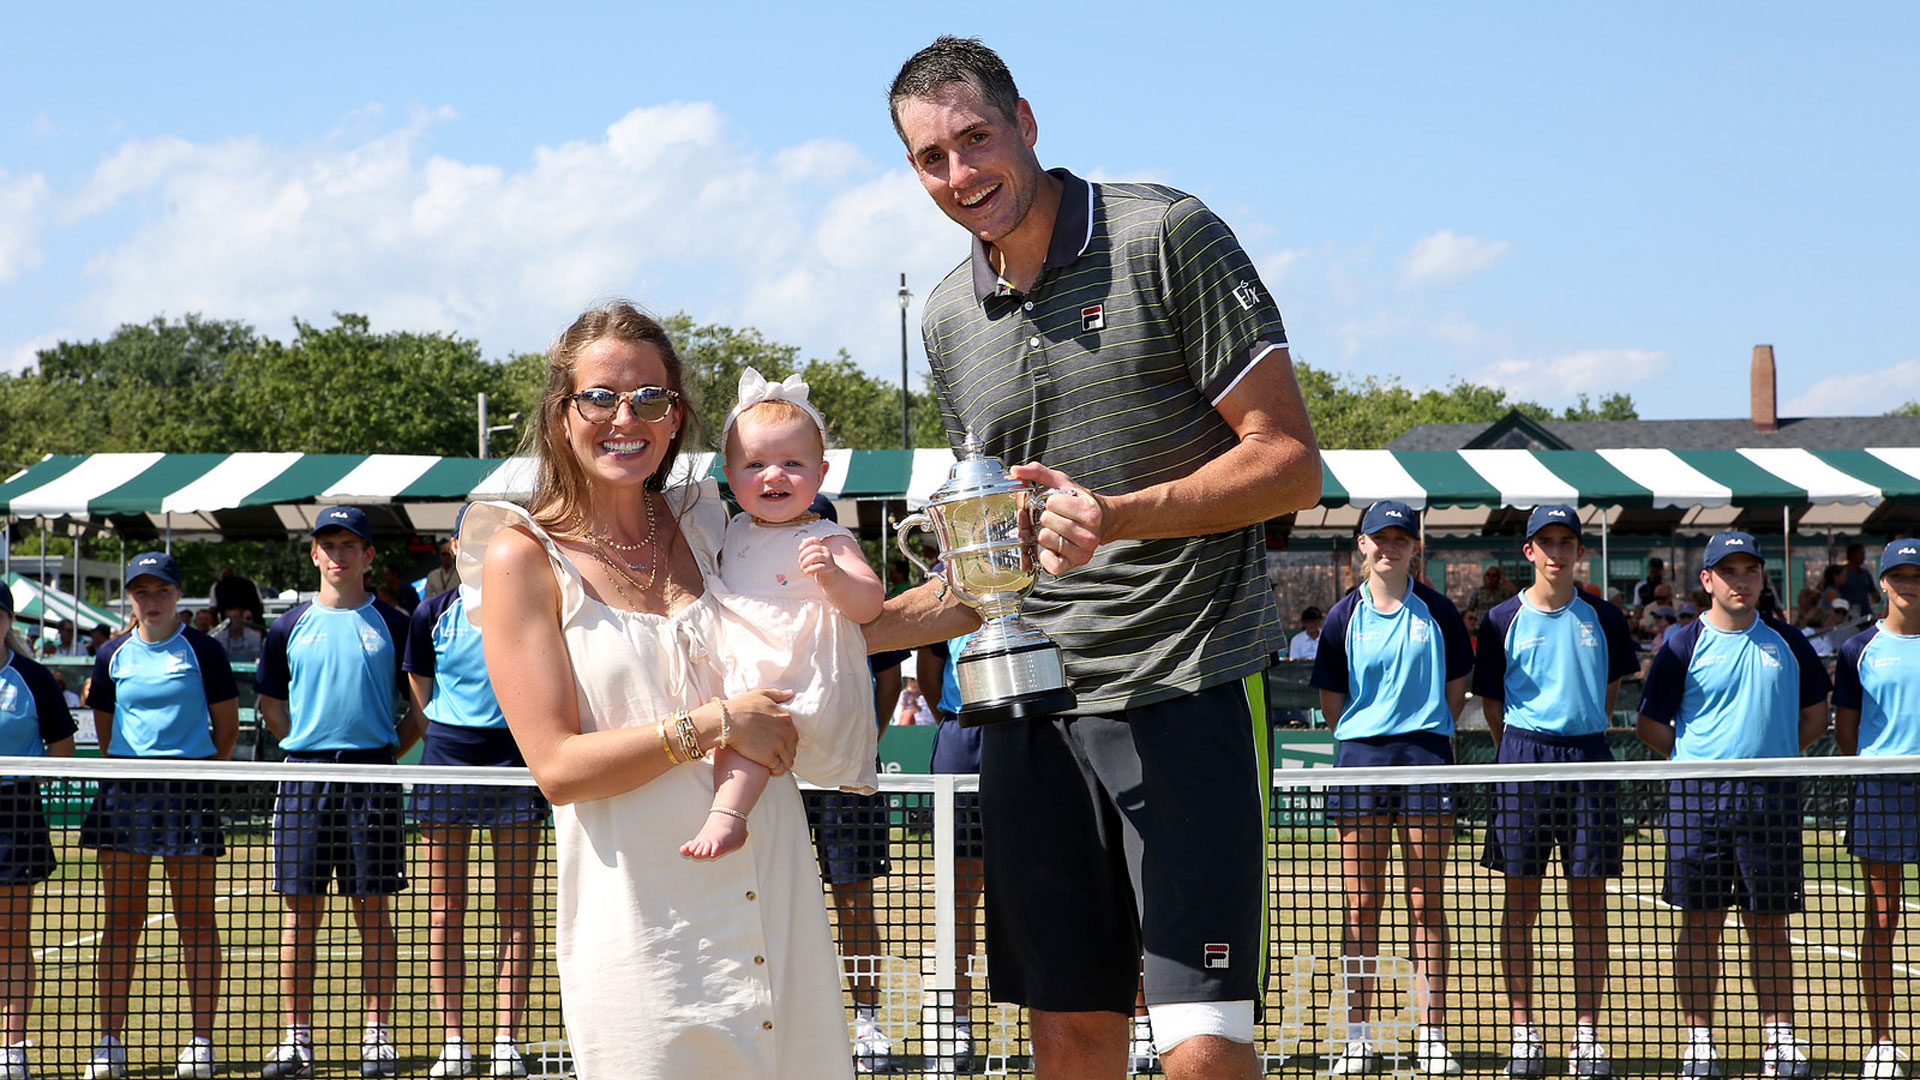 Isner celebrates with his family at Newport 2019